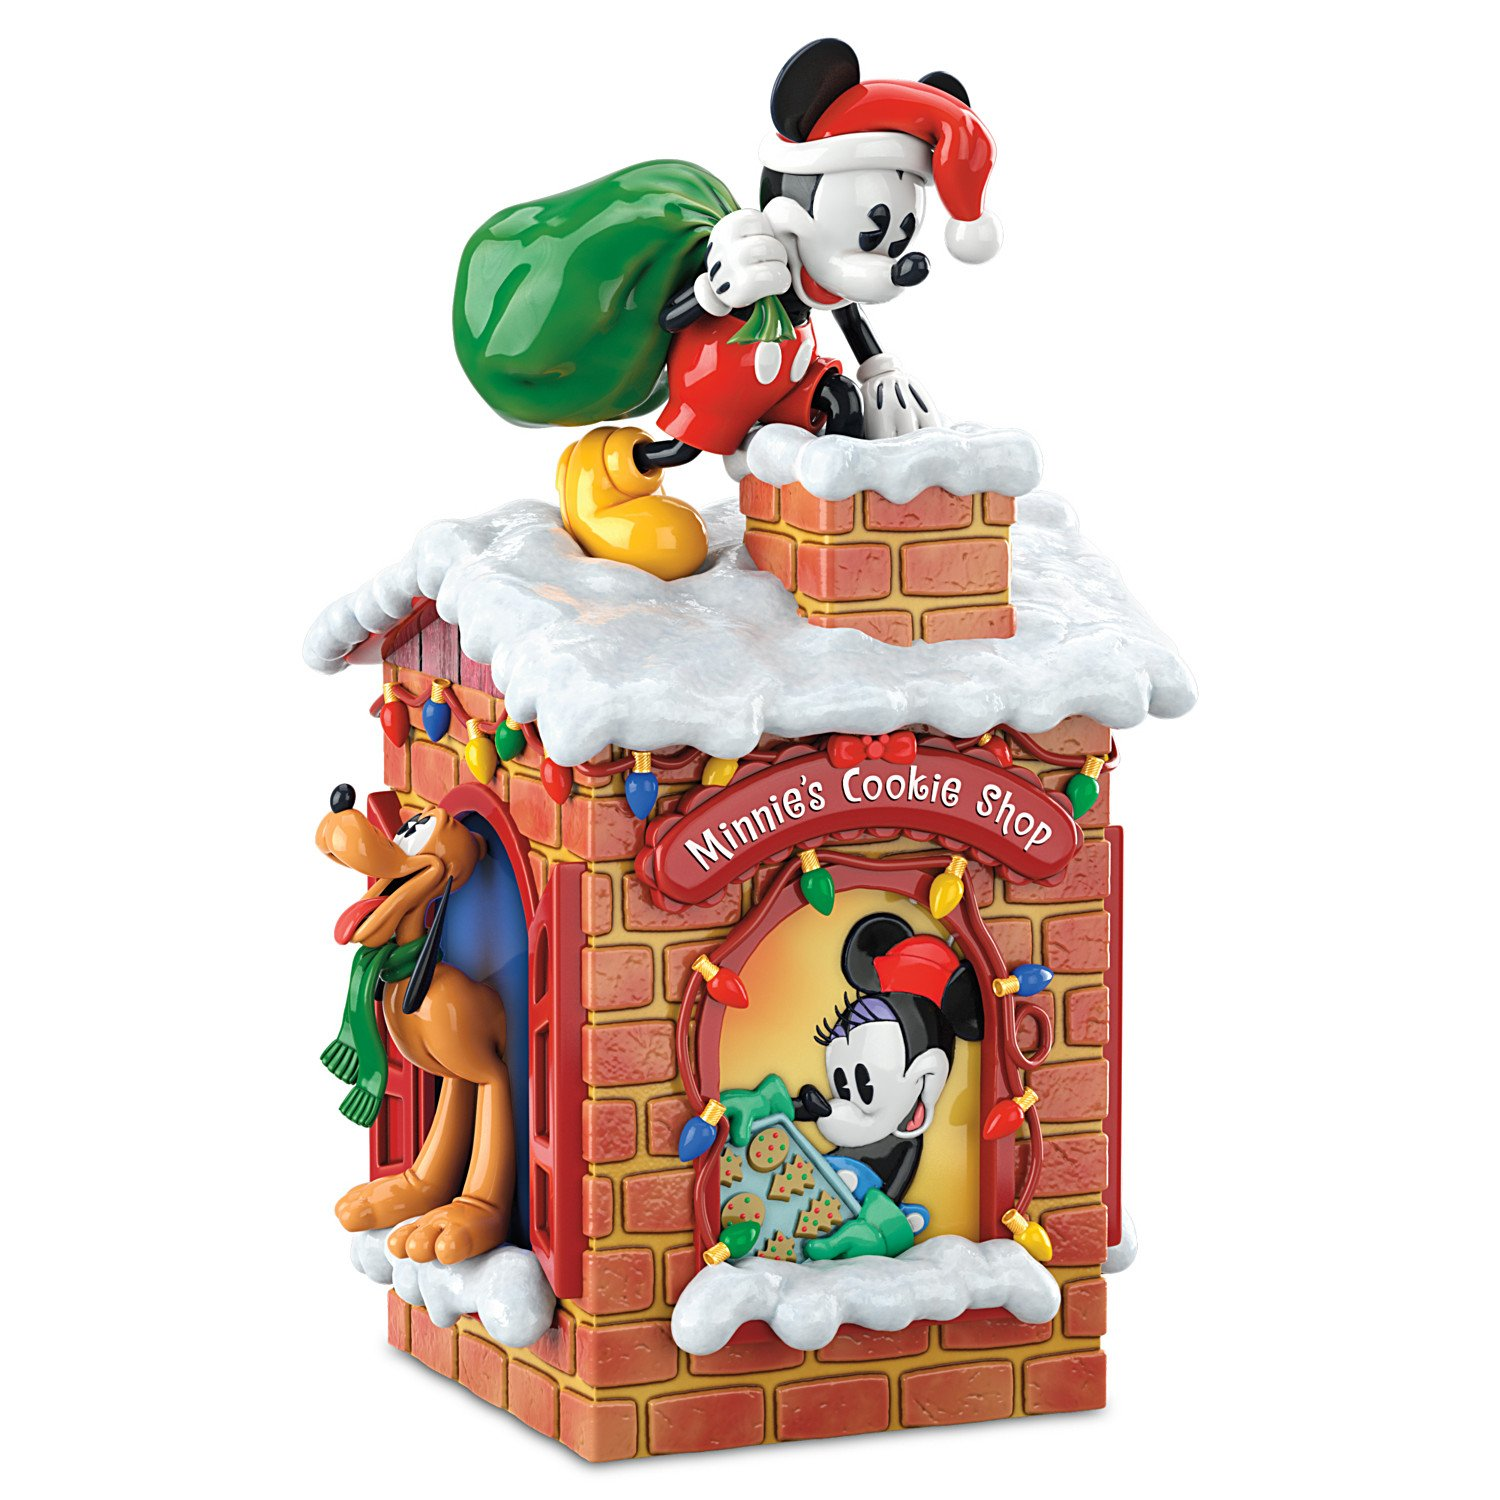 Disney Sweet Holiday Treats Mickey Mouse And Friends Christmas Cookie Jar by The Bradford Exchange by Bradford Exchange